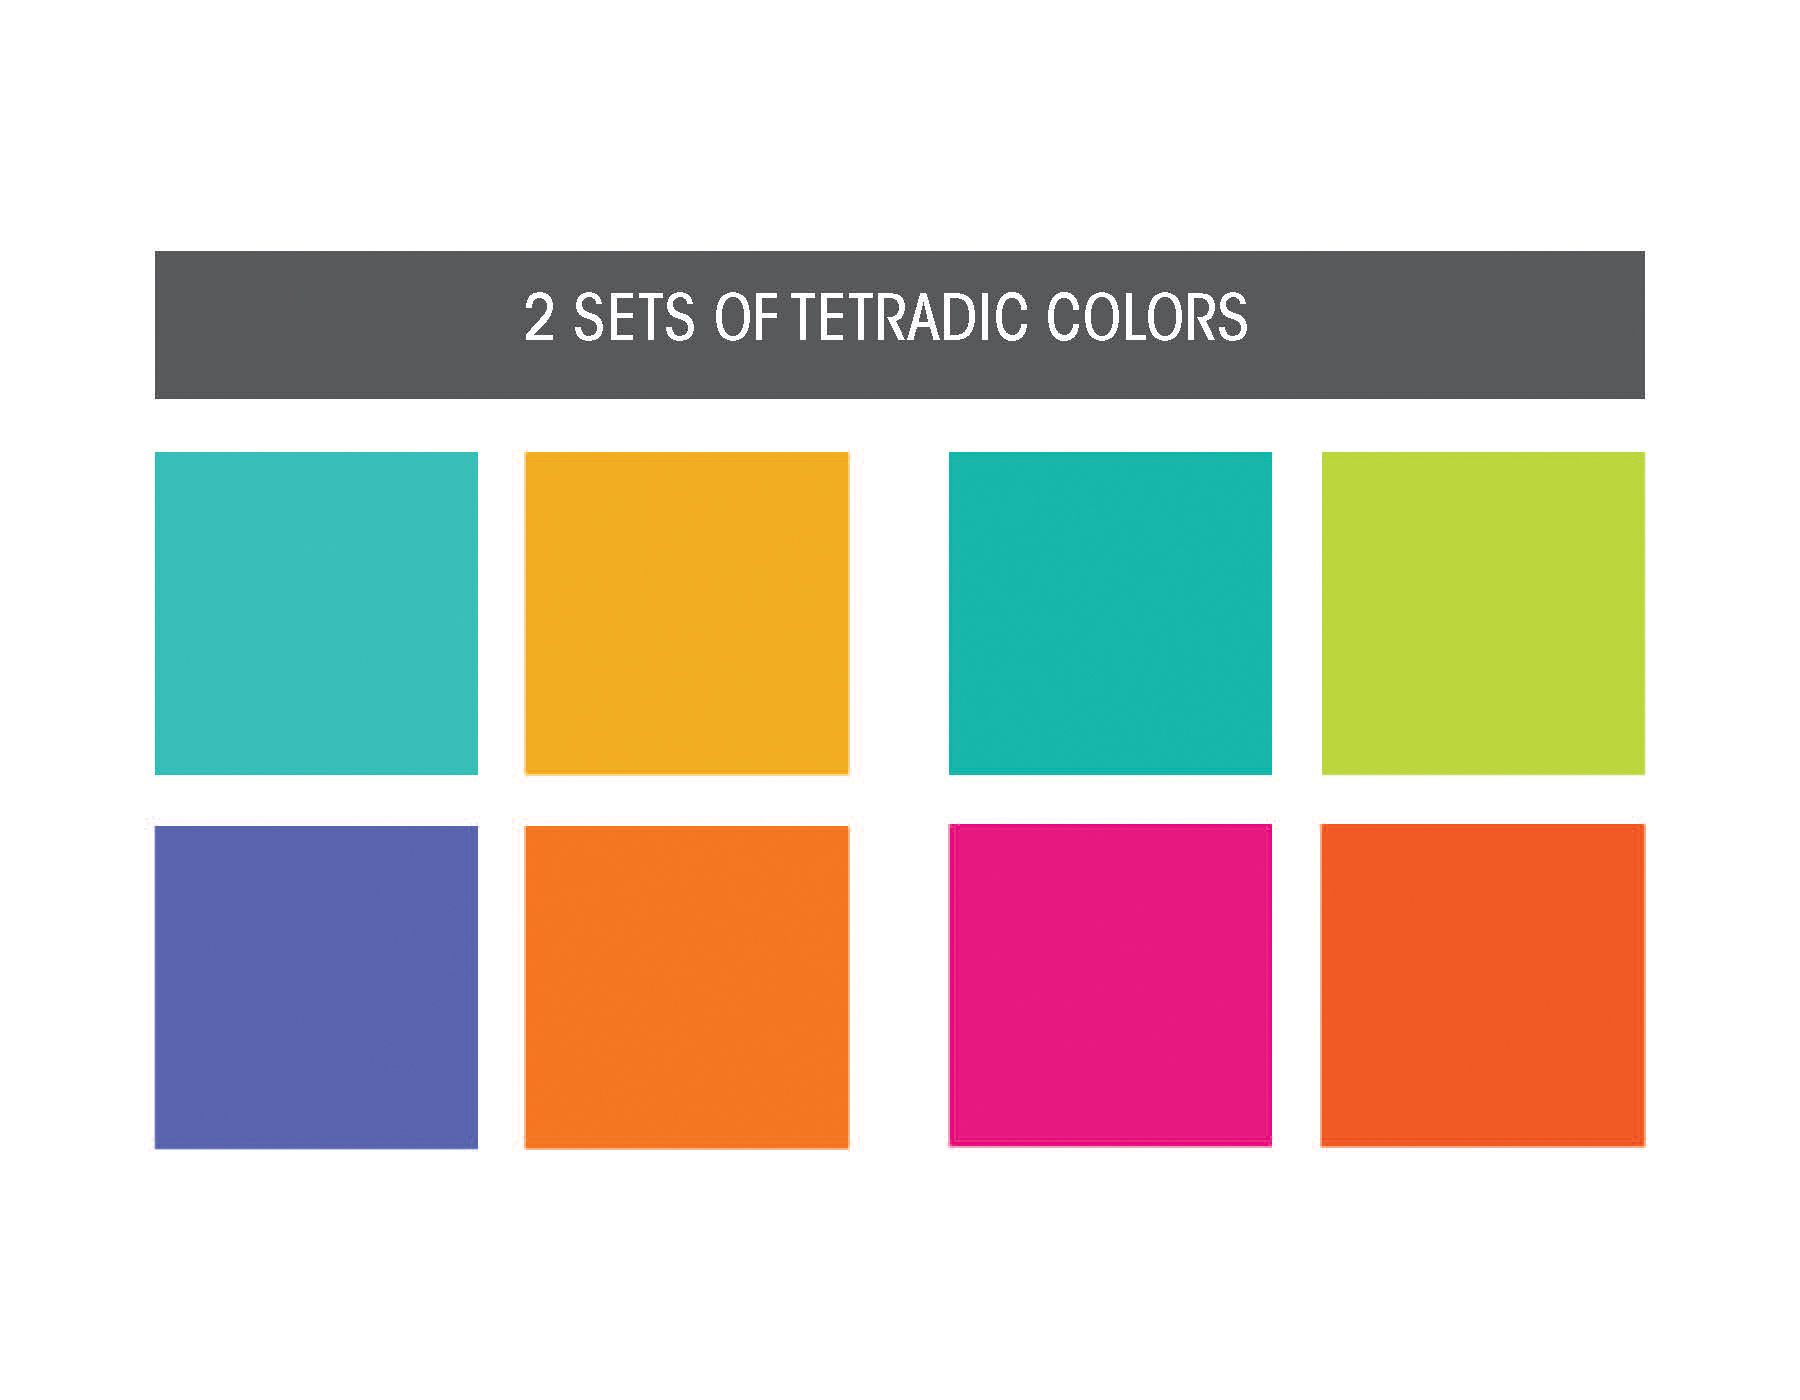 4 Color Combinations tetradic colors-combinations of 4 colors that form a rectangle or